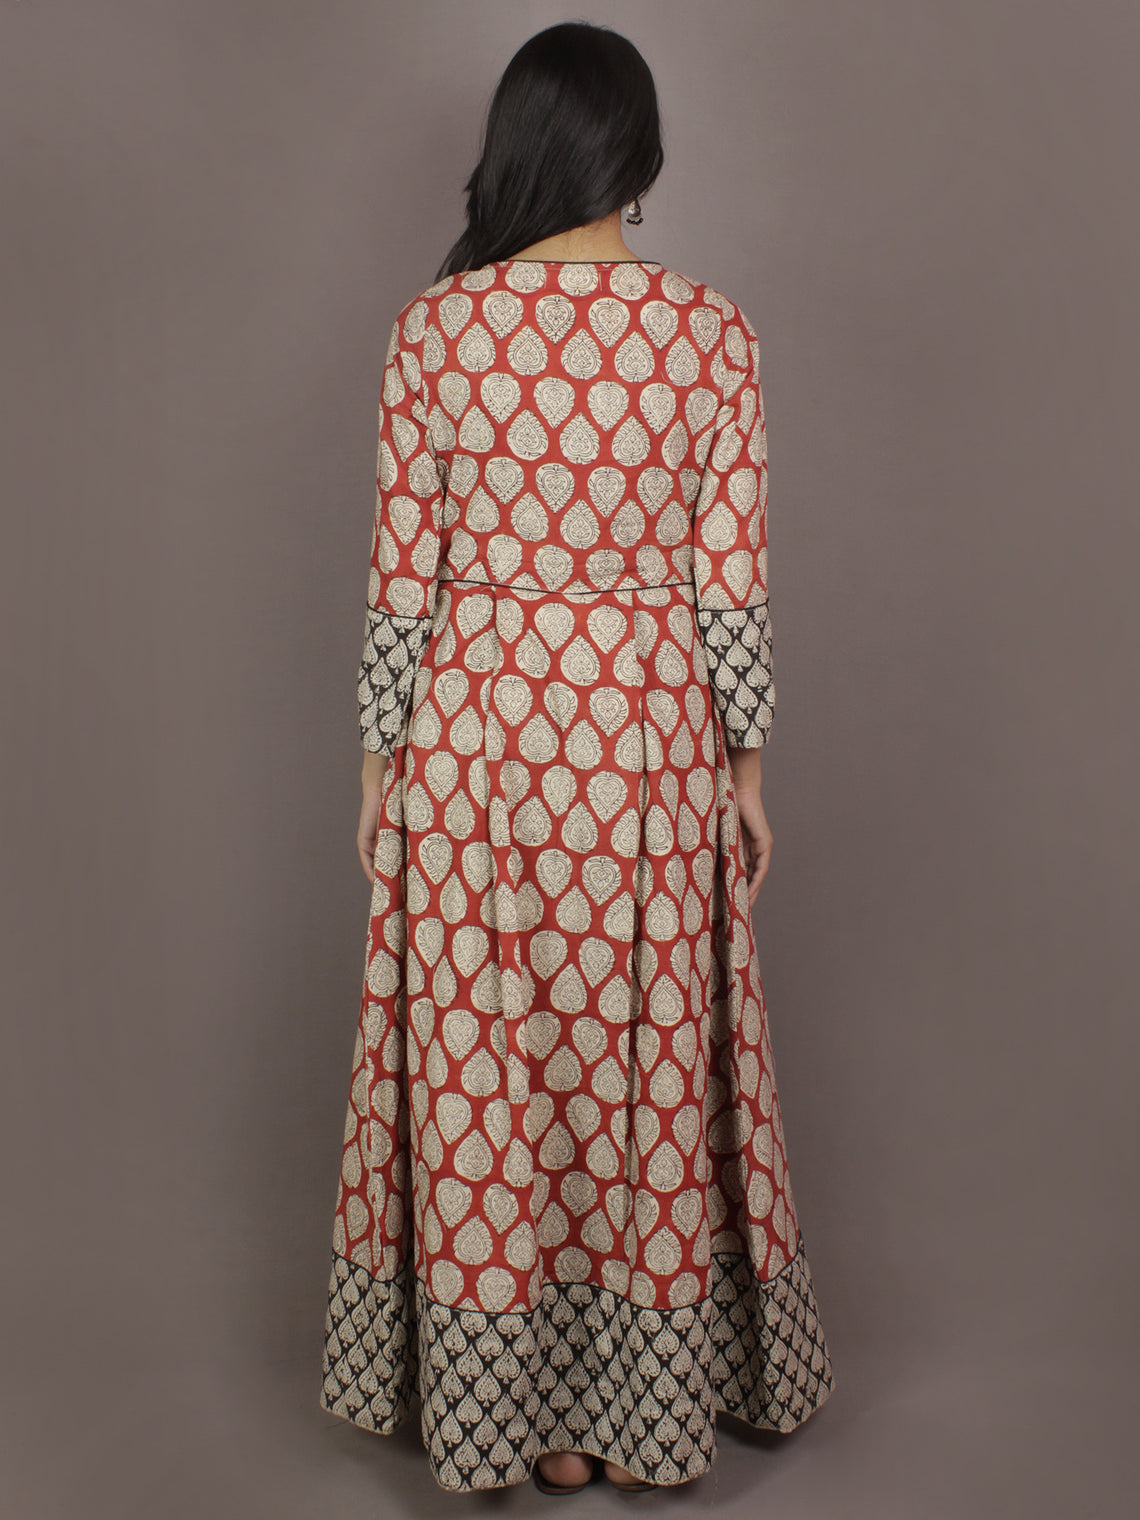 Red Beige Black Hand Block Printed Long Cotton Dress With Box Pleats & Side Pockets - D2522602